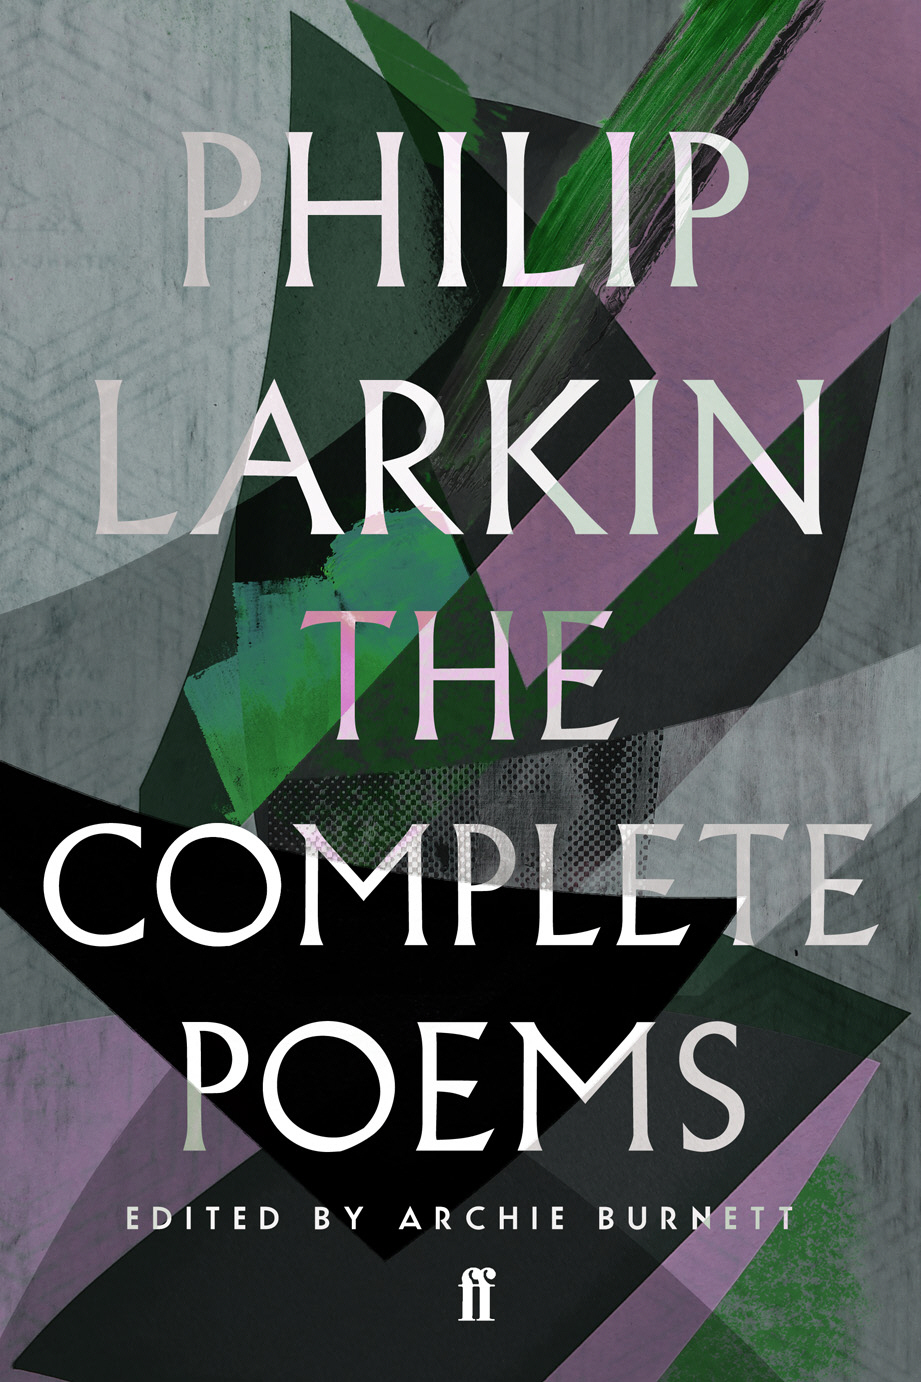 The Complete Poems of Philip Larkin by Edited By Philip Larkin, Edited By Archie Burnett, ISBN: 9780571240074